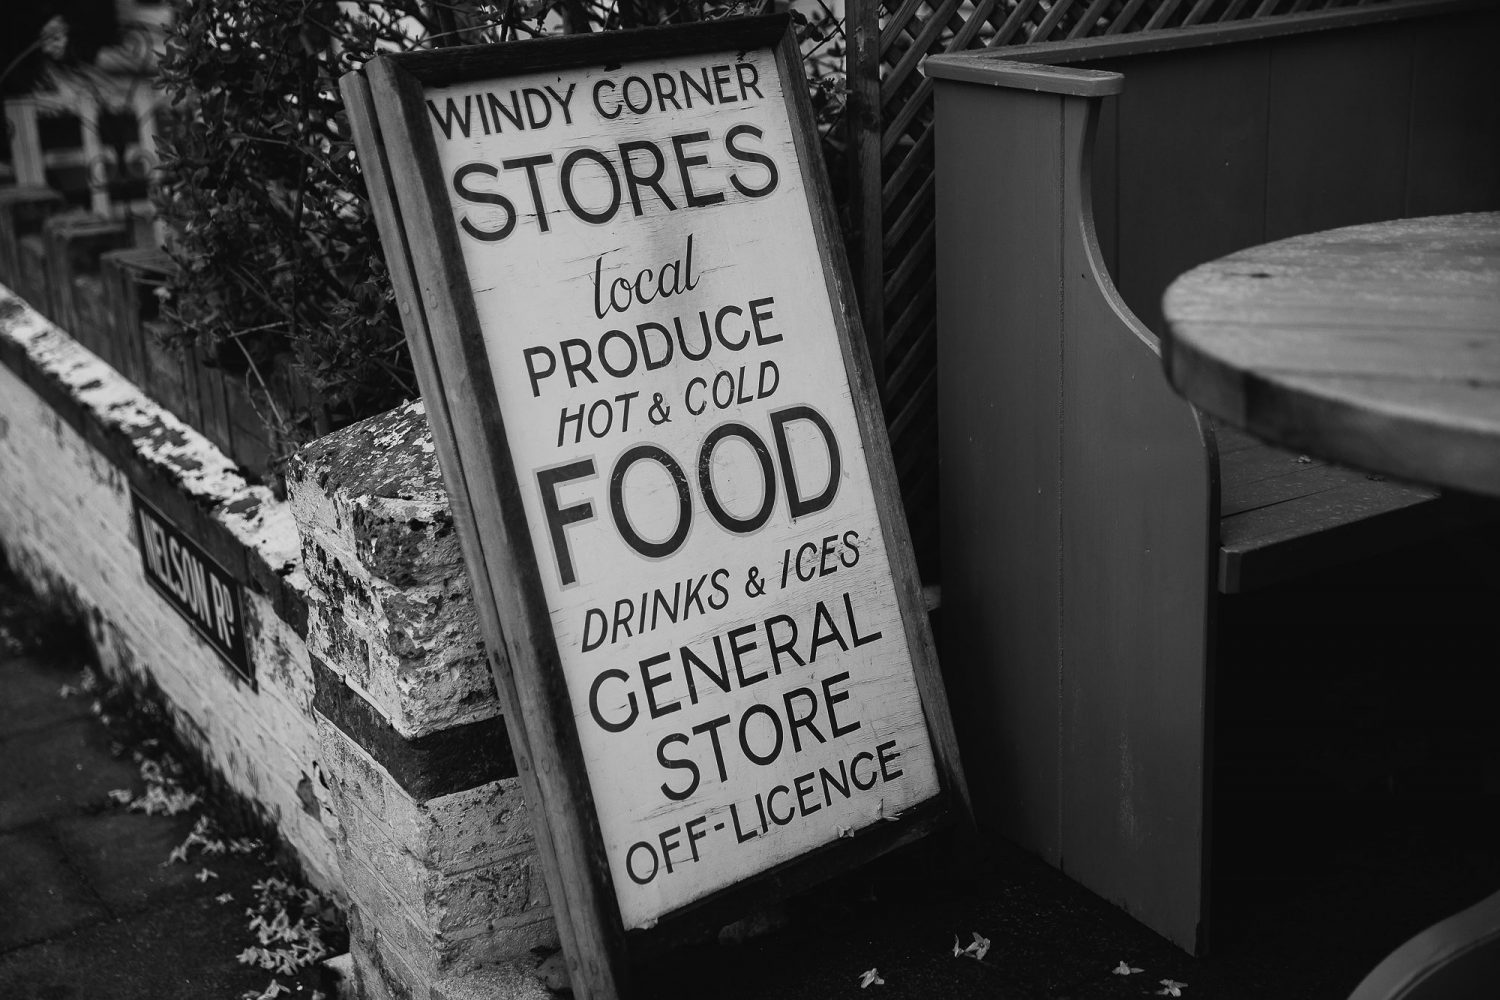 day in the life photography cafe sign windy corner stores